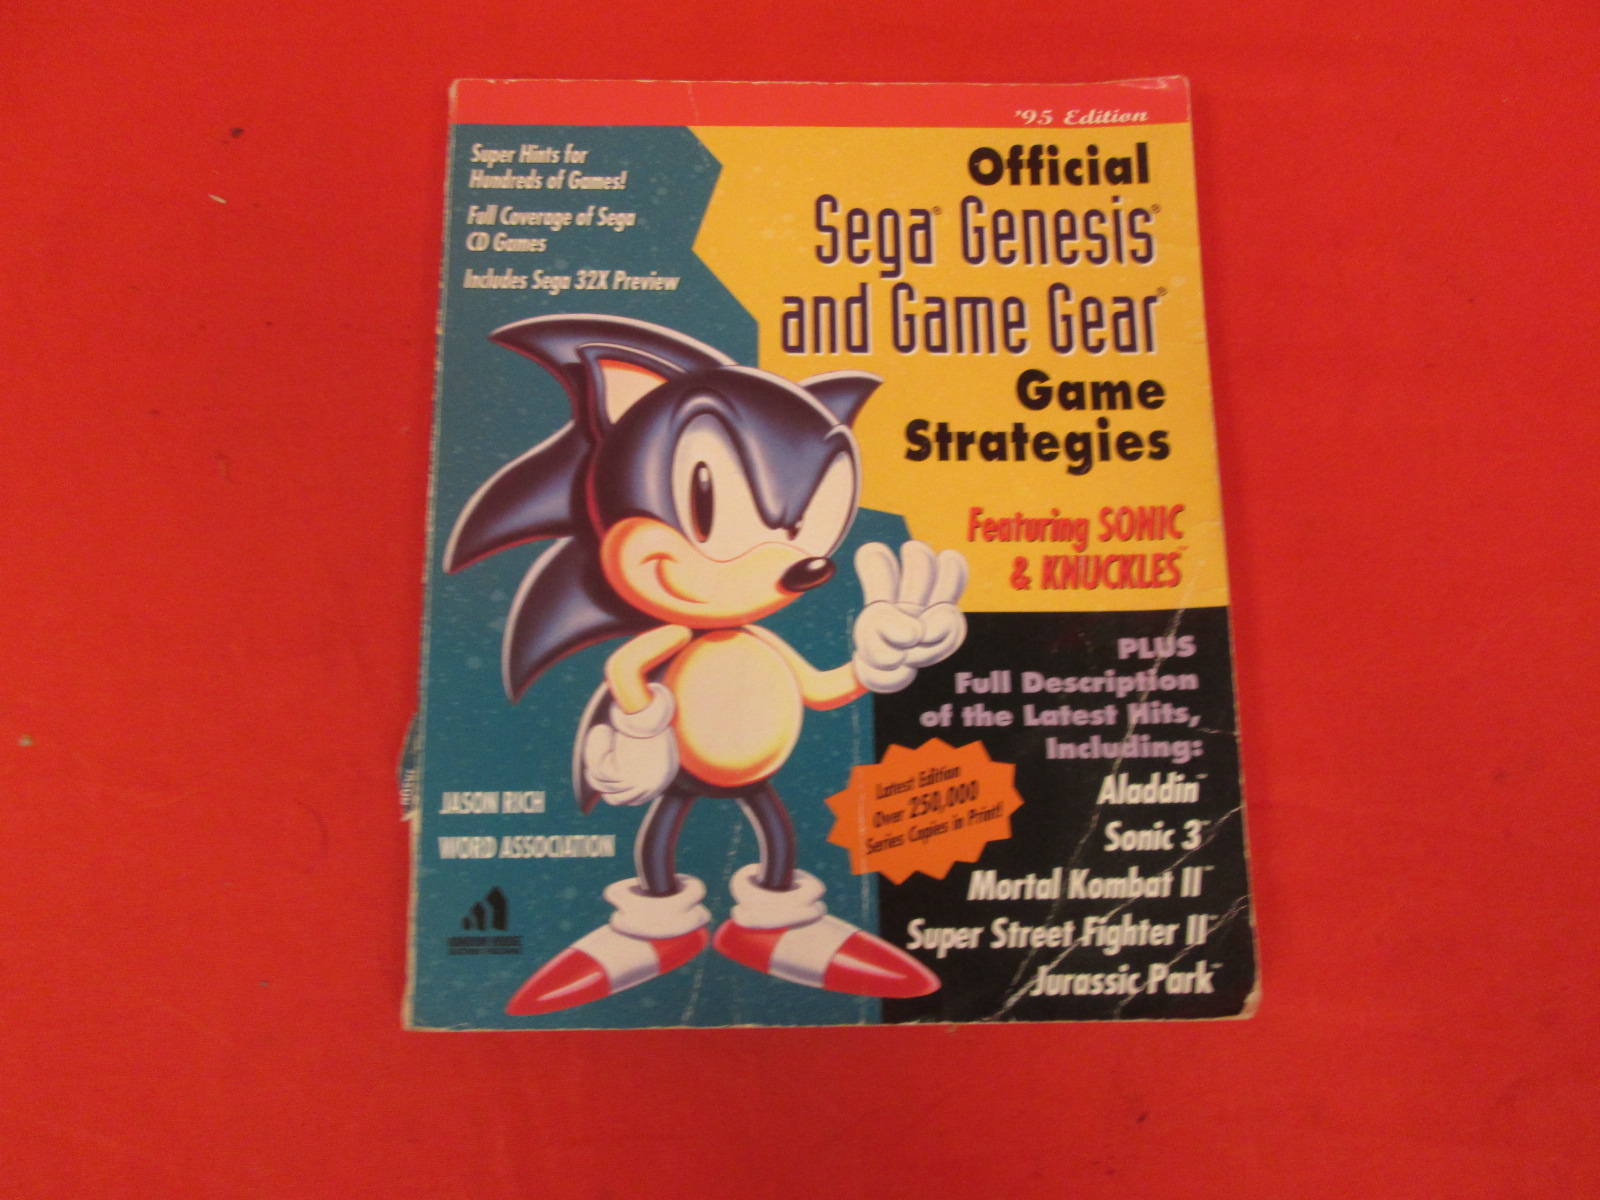 Official Sega Genesis And Game Gear Game Strategy '95 Edition Strategy